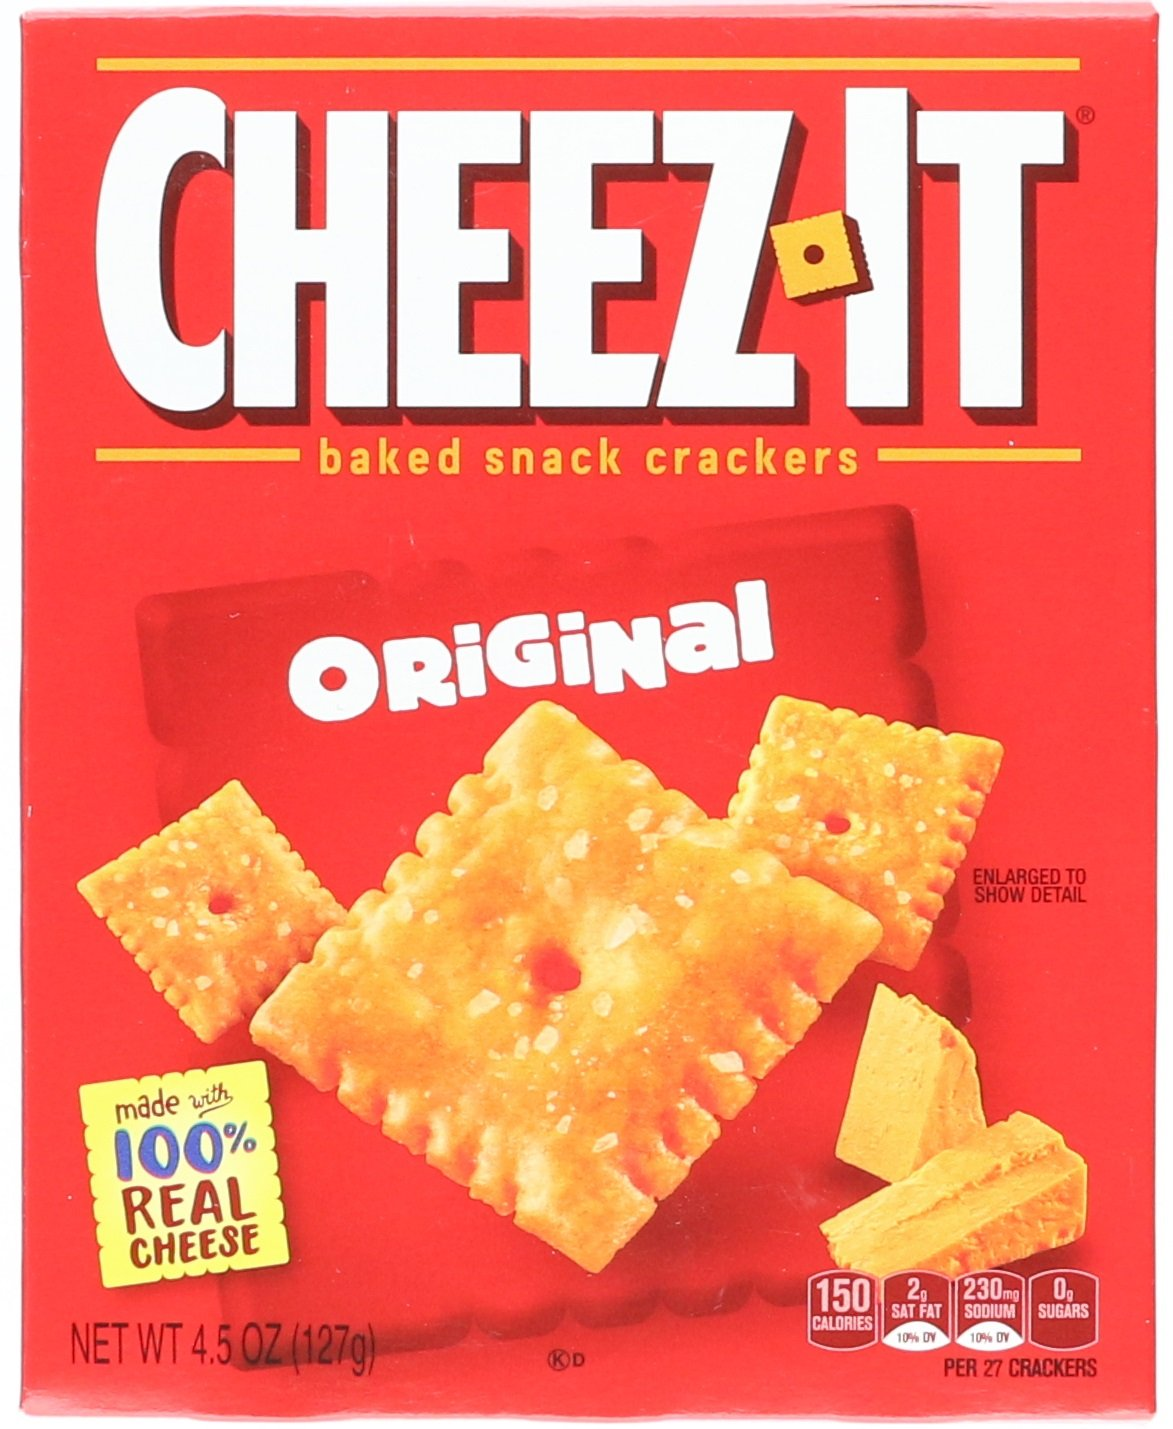 Cheez-It Baked Snack Crackers, 4.5 oz